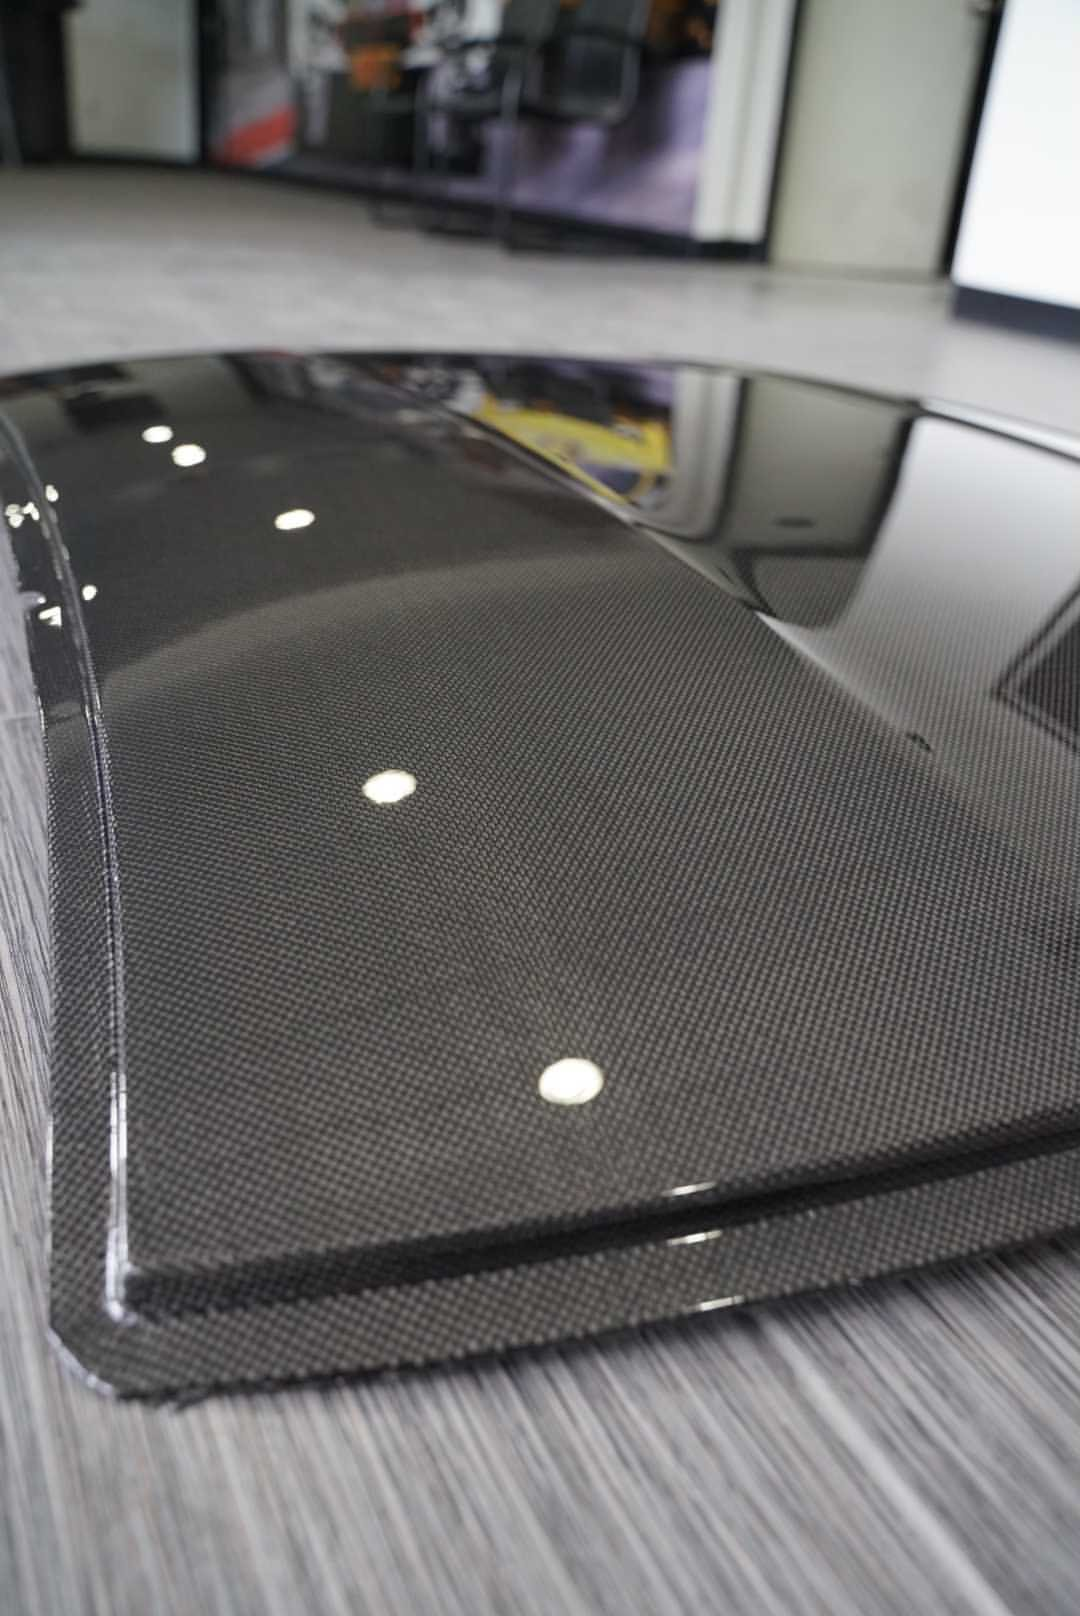 Vacuum bagged for strength and weight, the 2M Autowerks BMW F82 M4 Carbon Fiber Roof is a great performance modification that looks great!